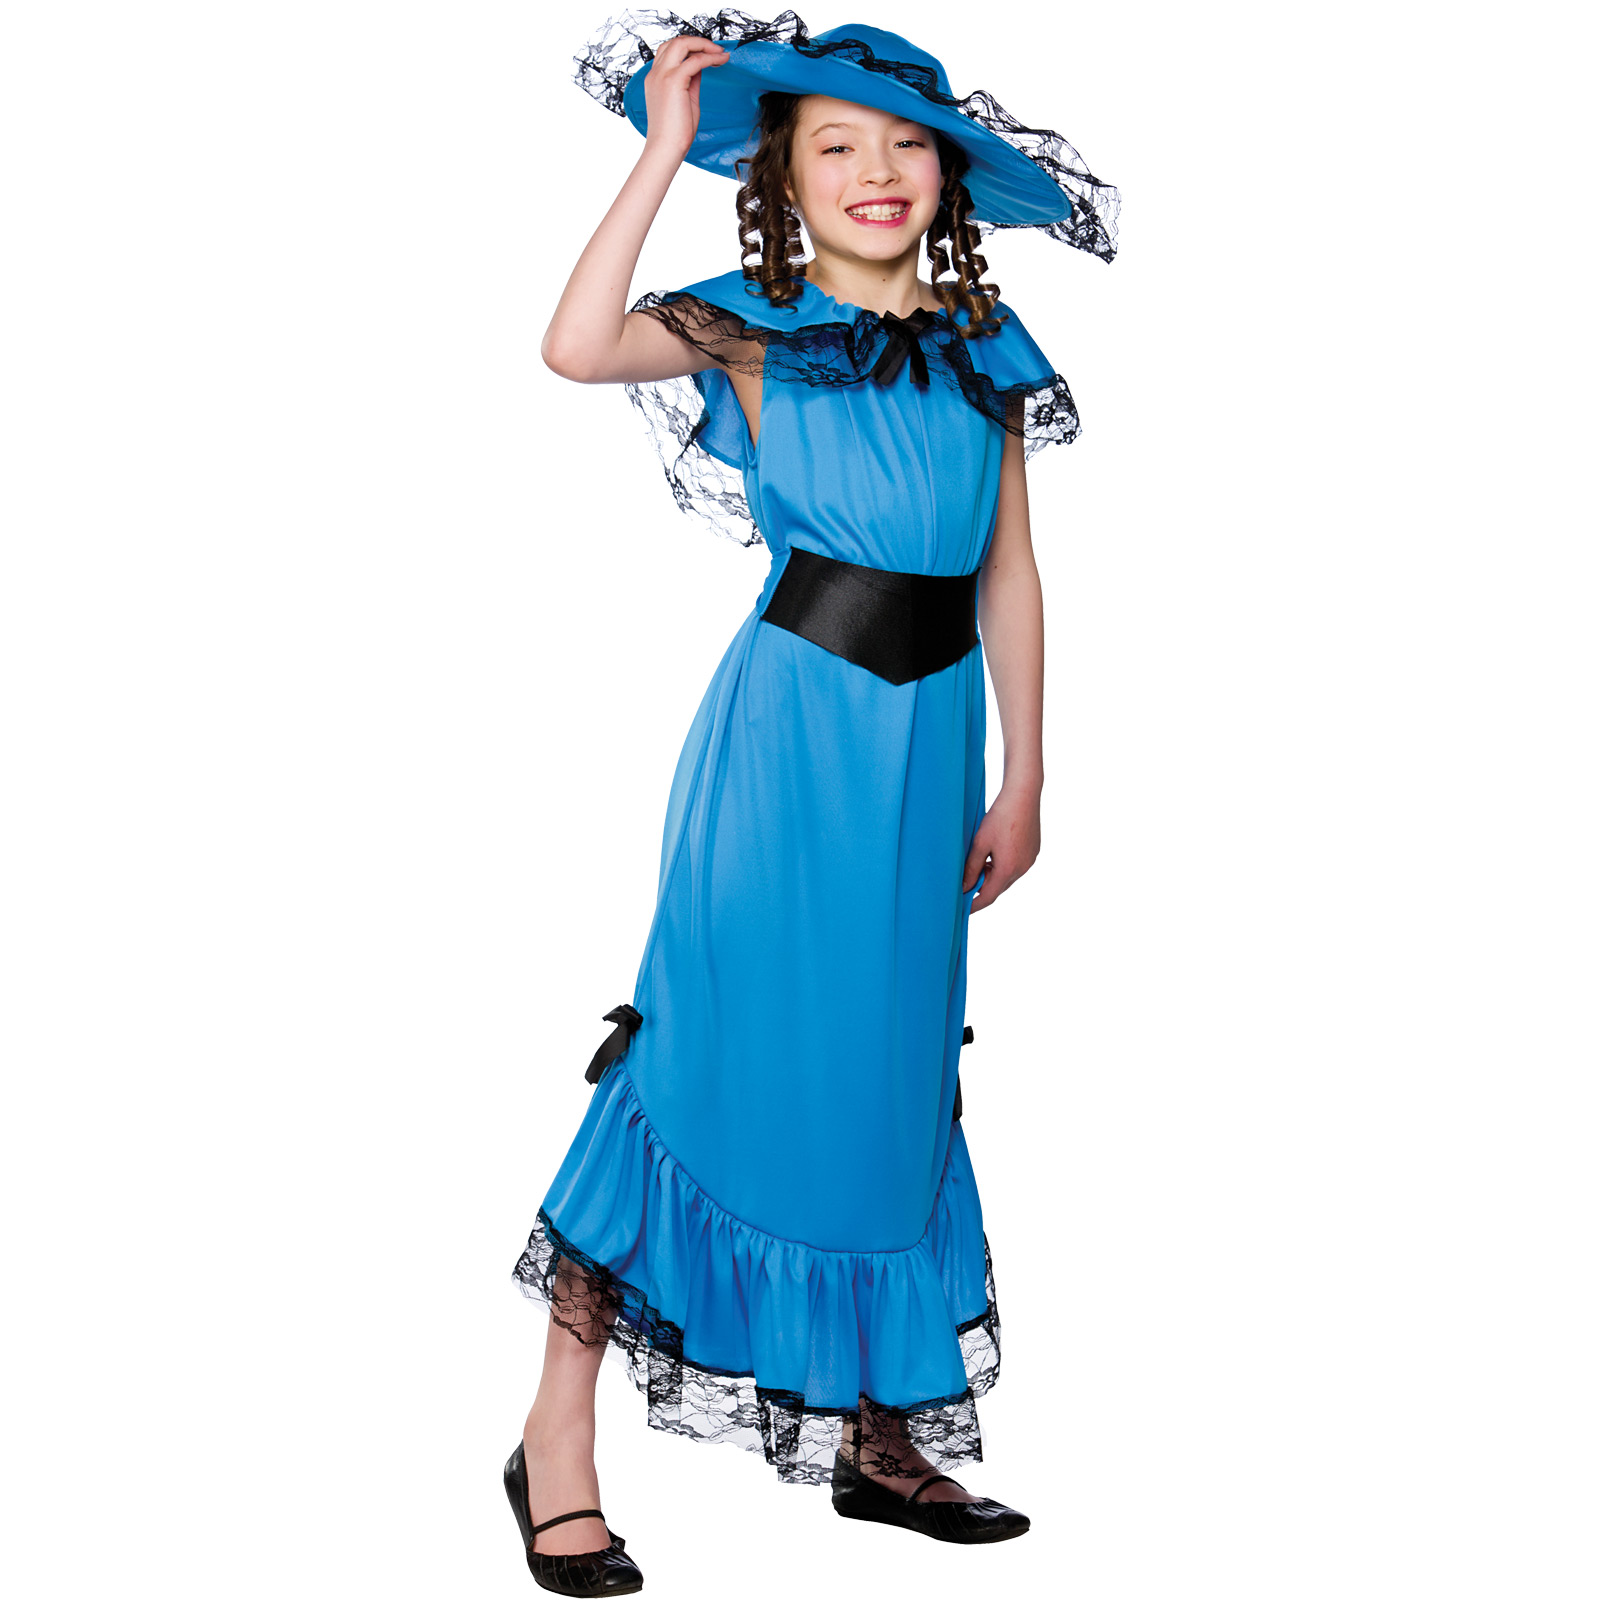 Child Girls Victorian Lady Blue Costume Fancy Dress Up Role Play ...